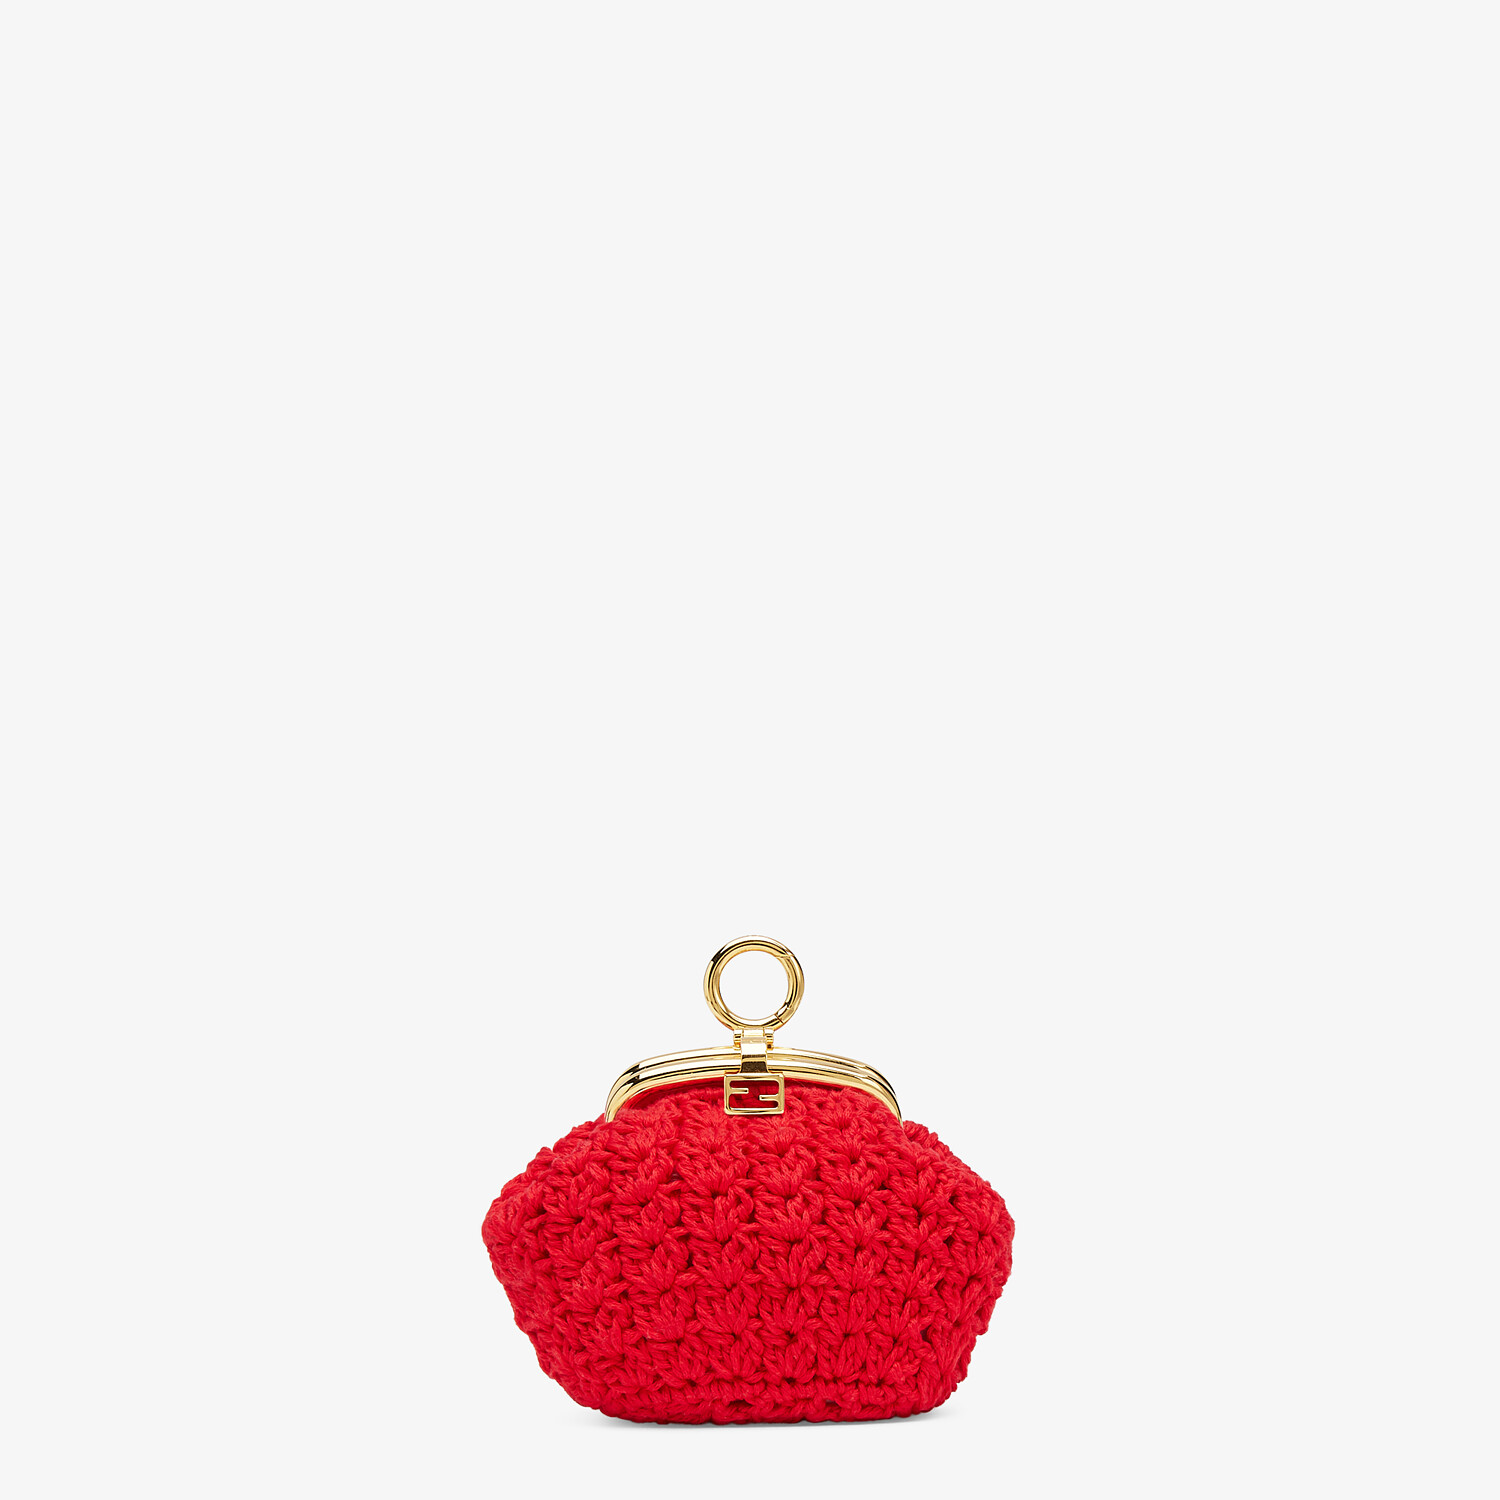 FENDI COIN PURSE - Red lace coin purse - view 1 detail